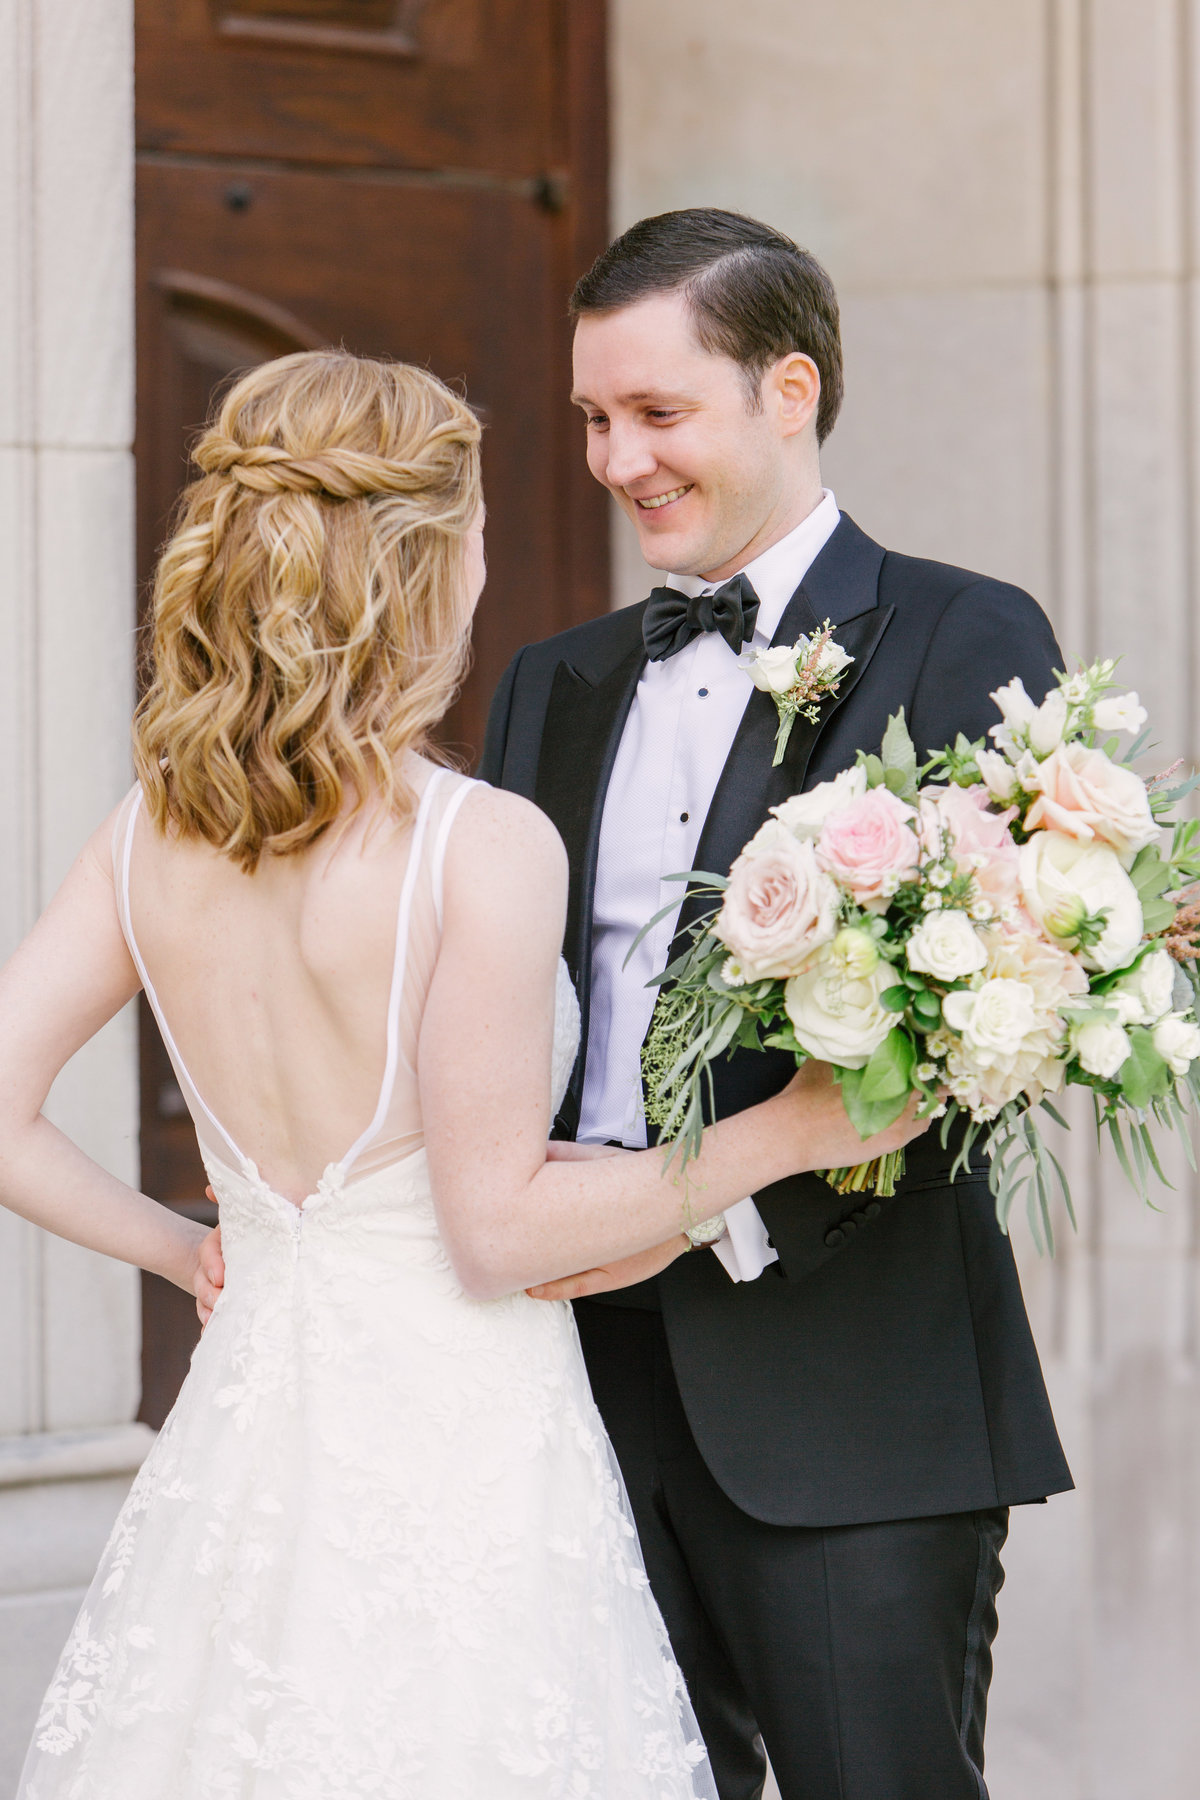 Scottish Rite Cathedral Wedding First Look Reaction Photo